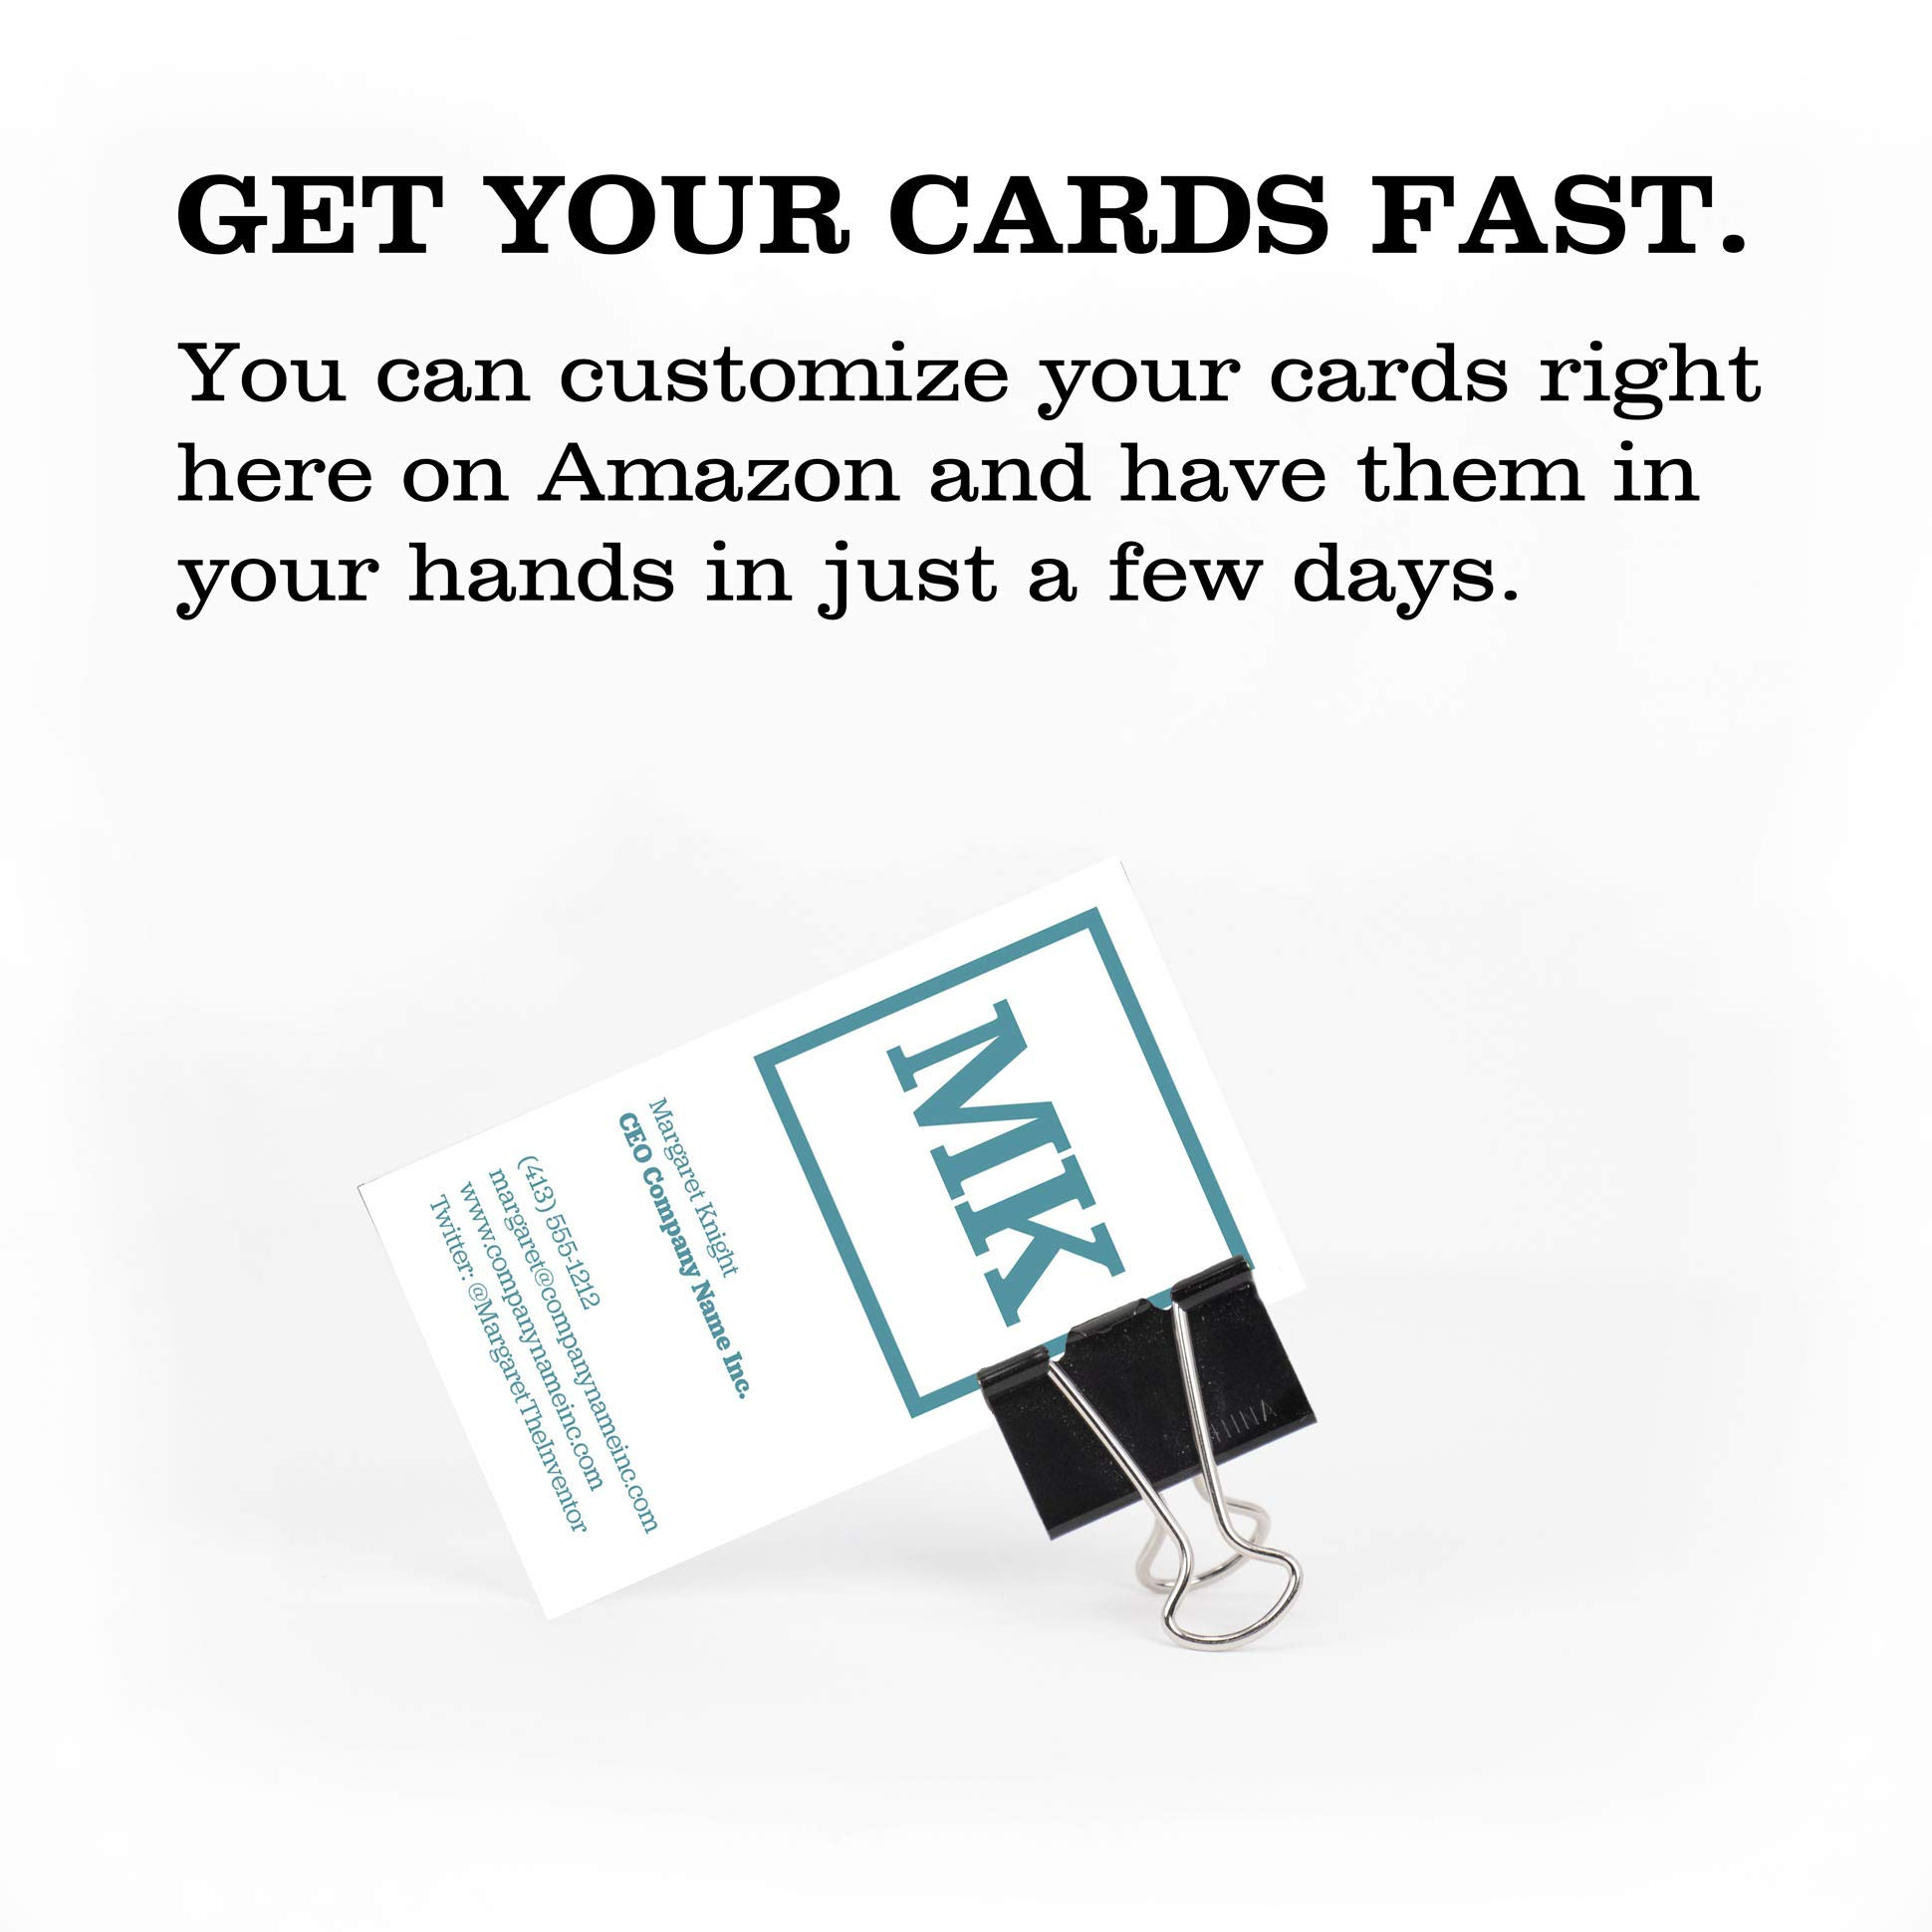 Buttonsmith Custom Ultra Thick Printed Business Cards - 3.5''x2'' - Quantity 500 - Double-Sided, 32 pt Smooth Touch - Made in The USA by Buttonsmith (Image #3)